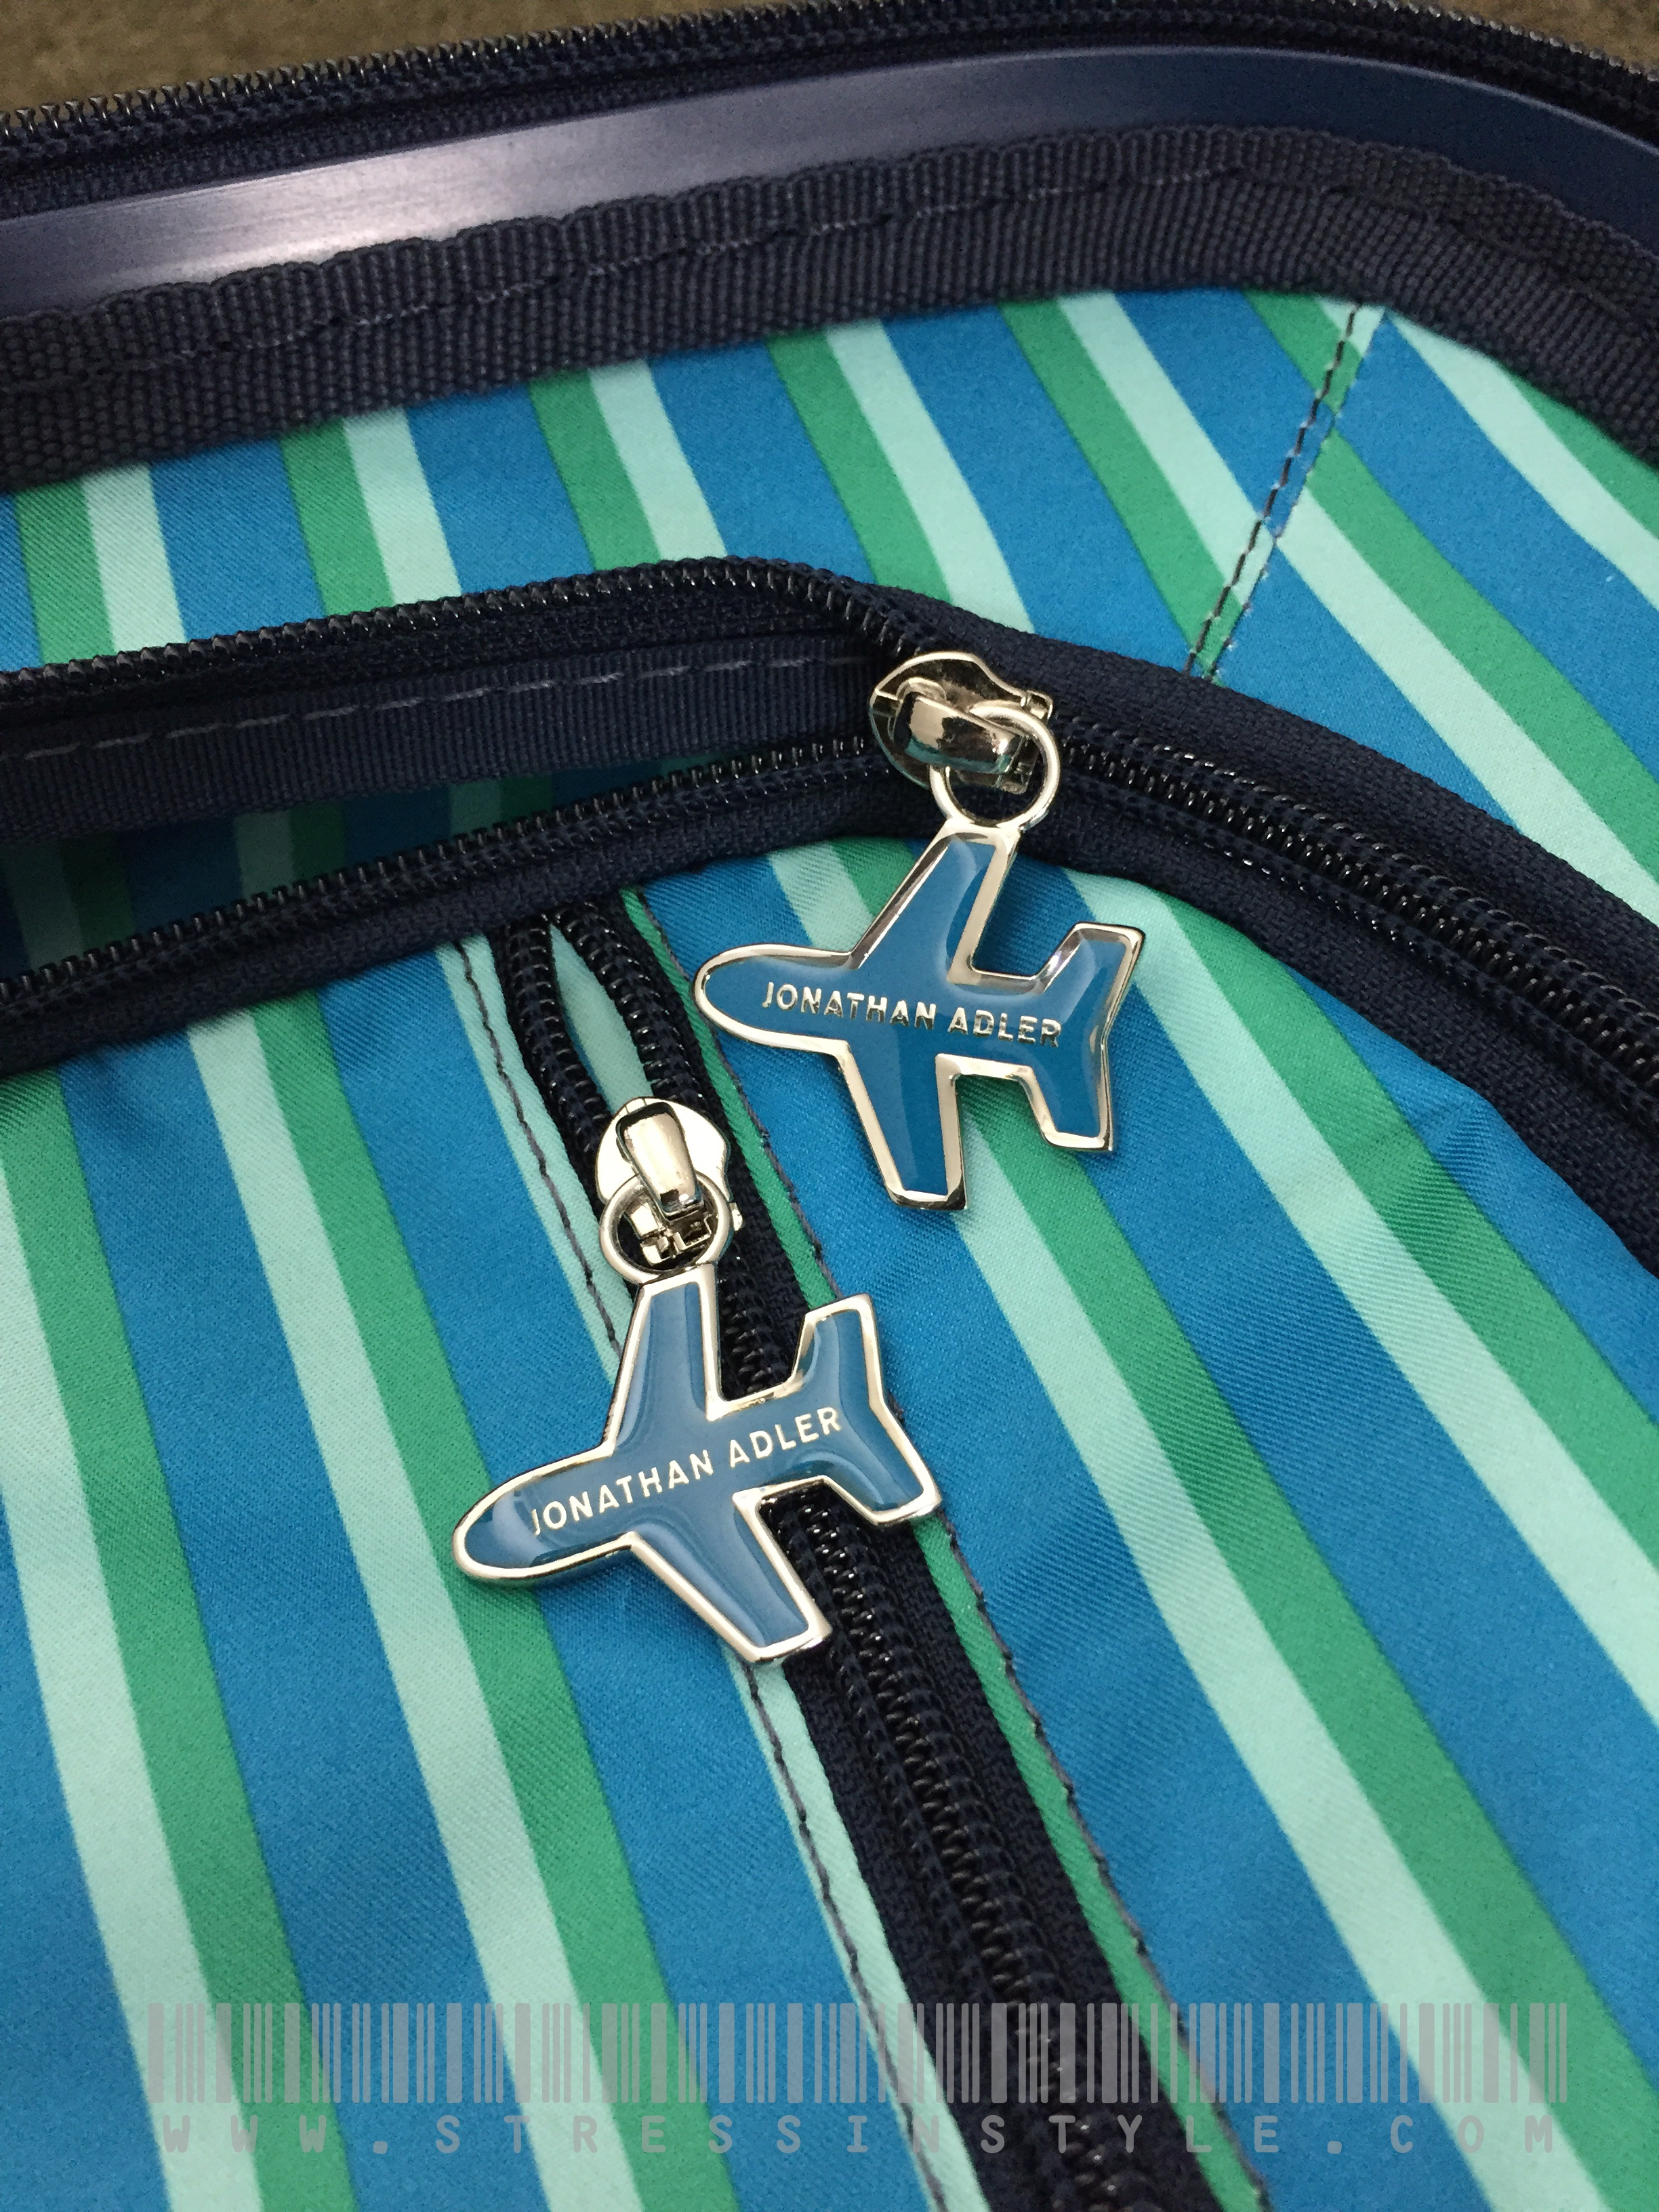 Airplane zipper pulls